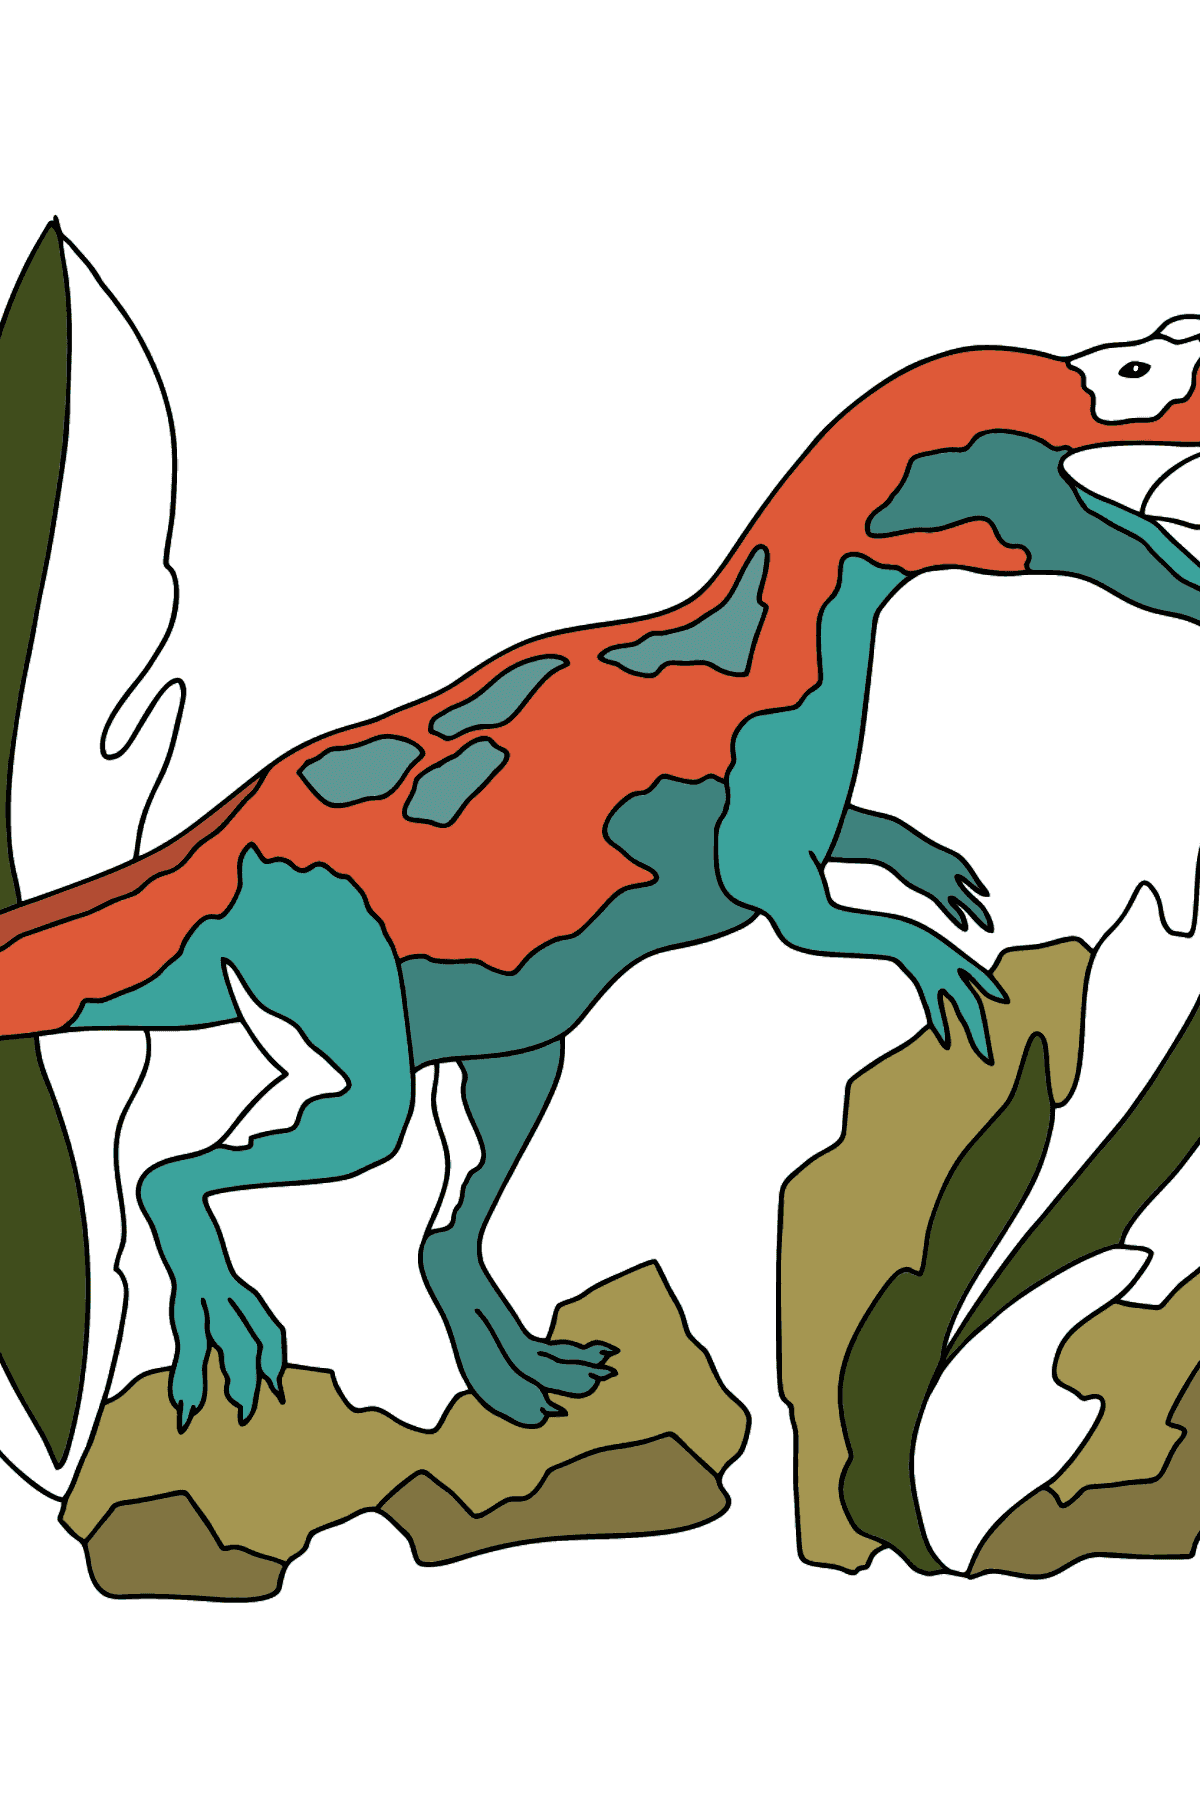 Coloring Page - Allosaurus - A Distinct Representative of Dinosaurs - Coloring Pages for Kids